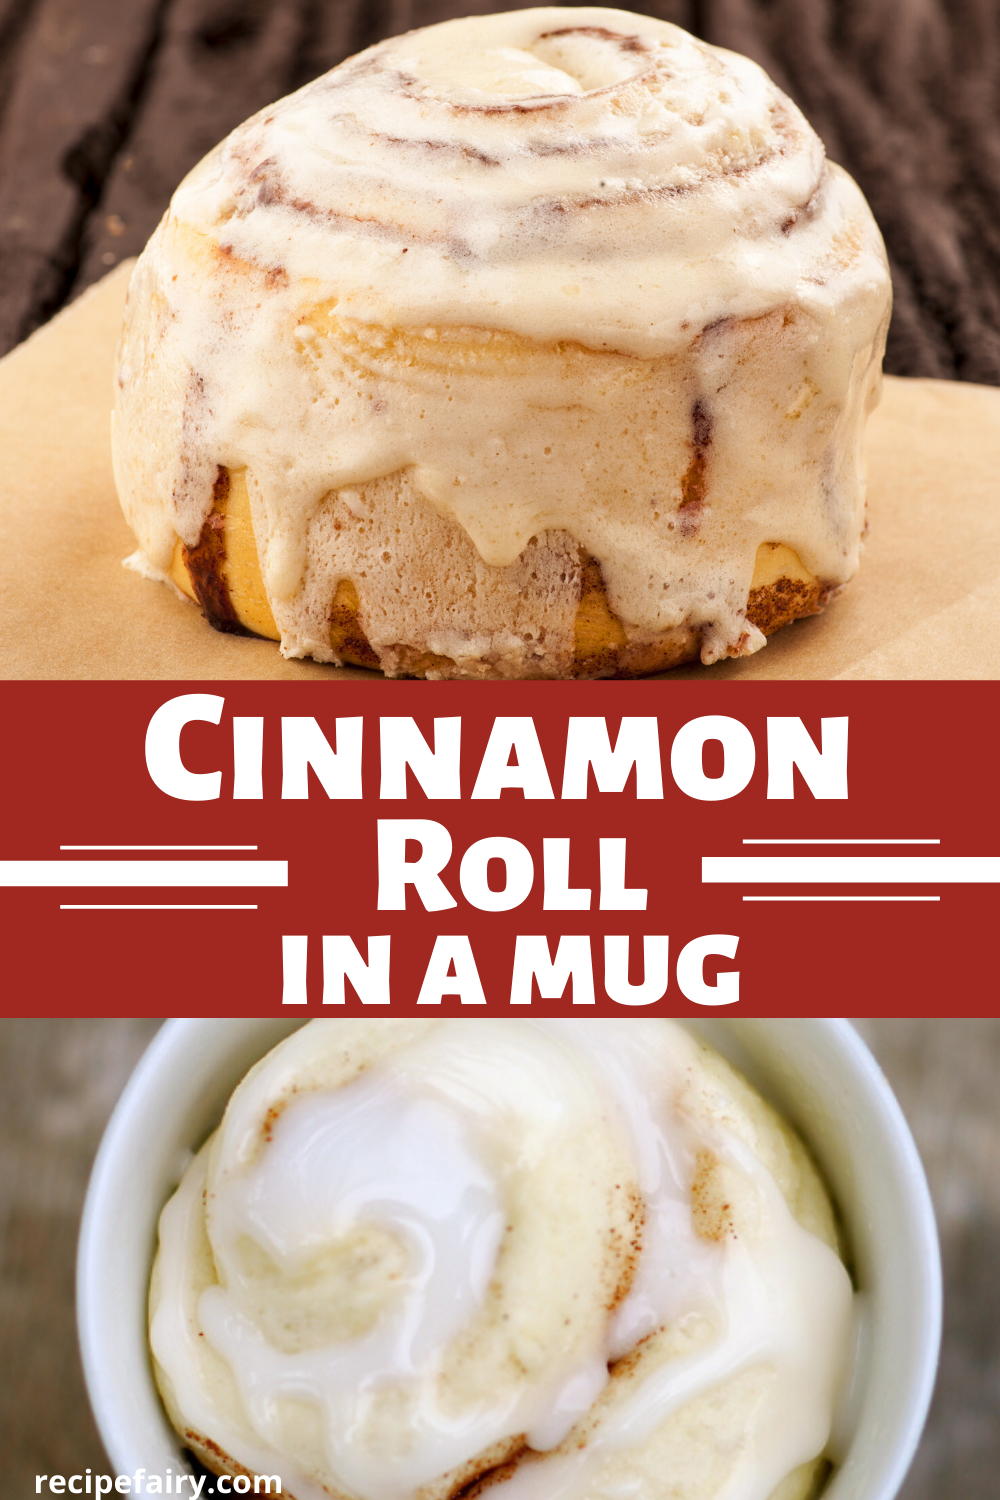 Cinnamon Roll in a Mug #mugcake